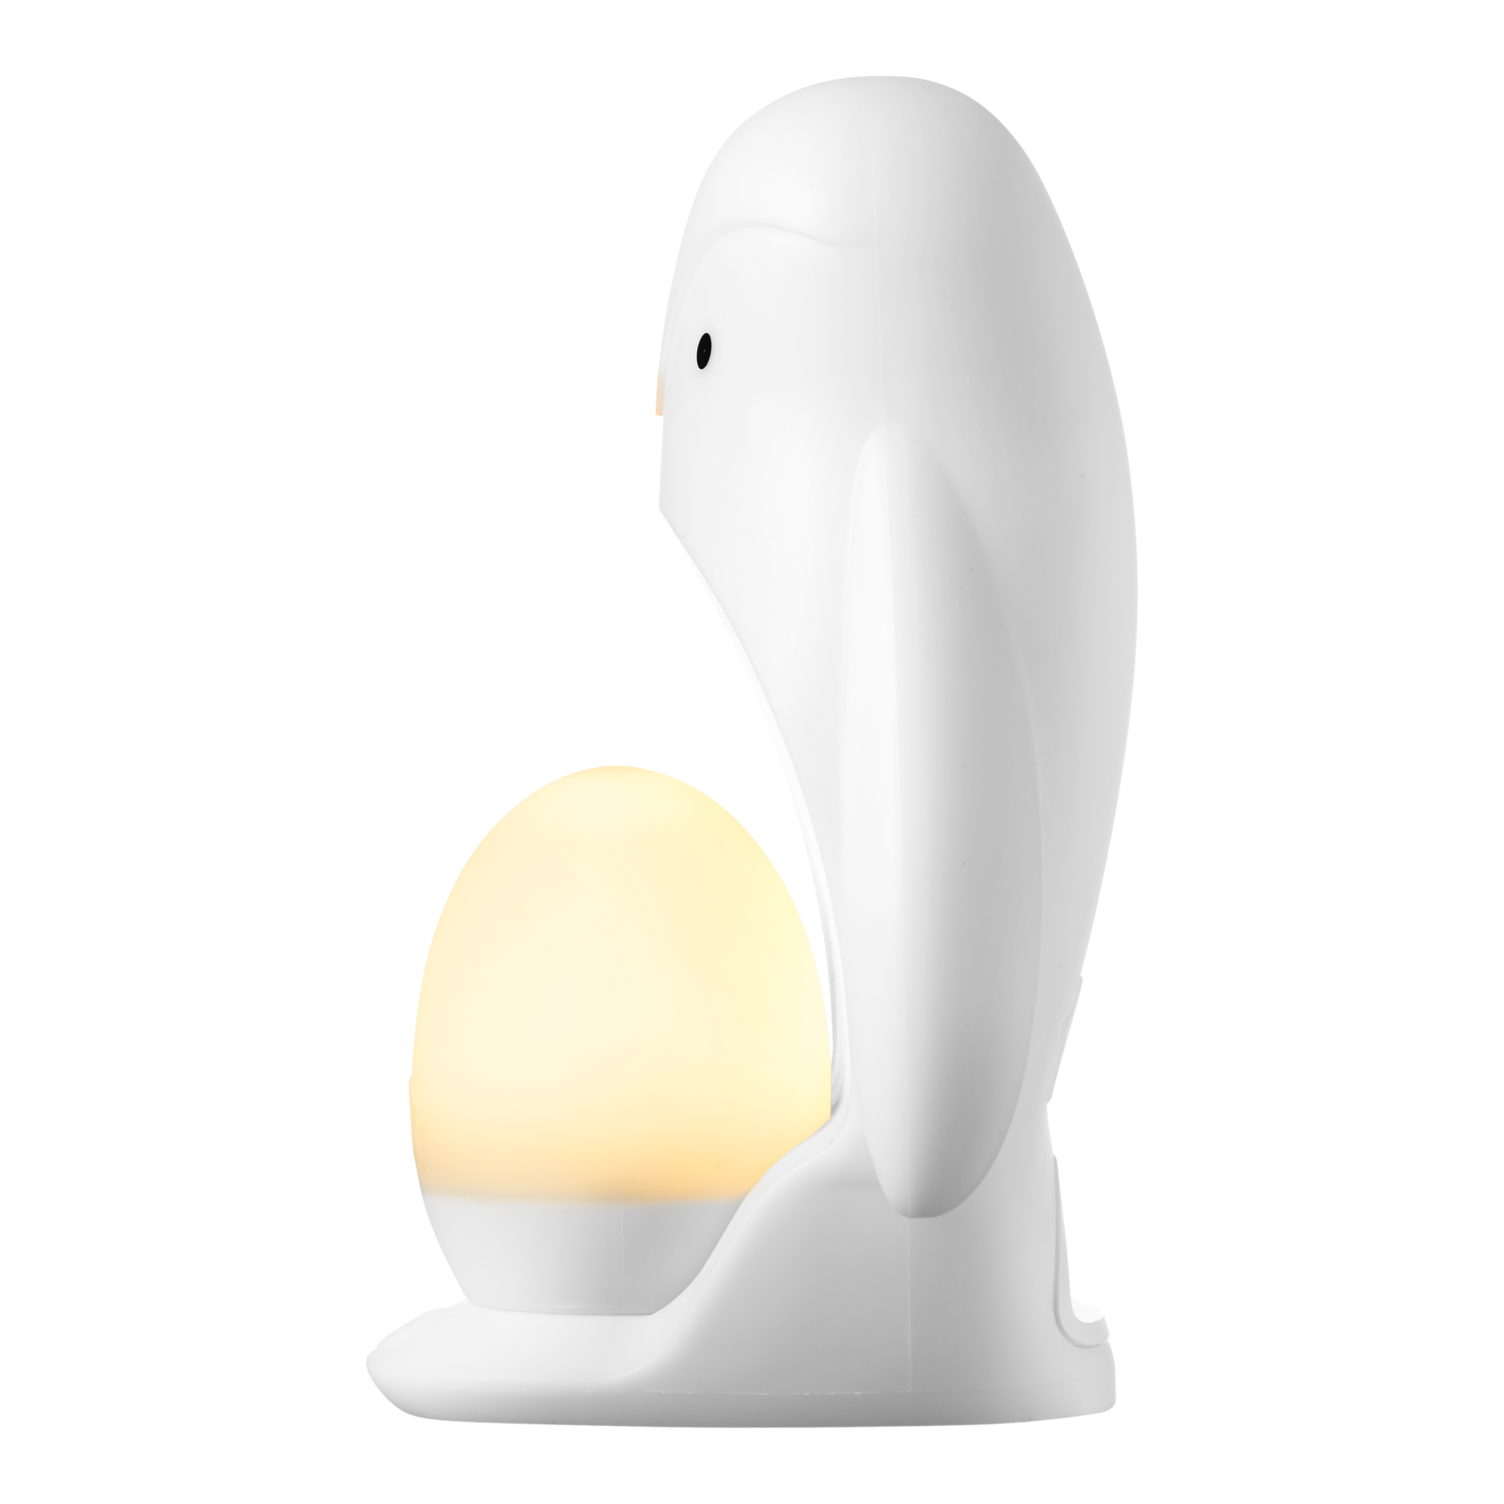 penguin nightlight_01